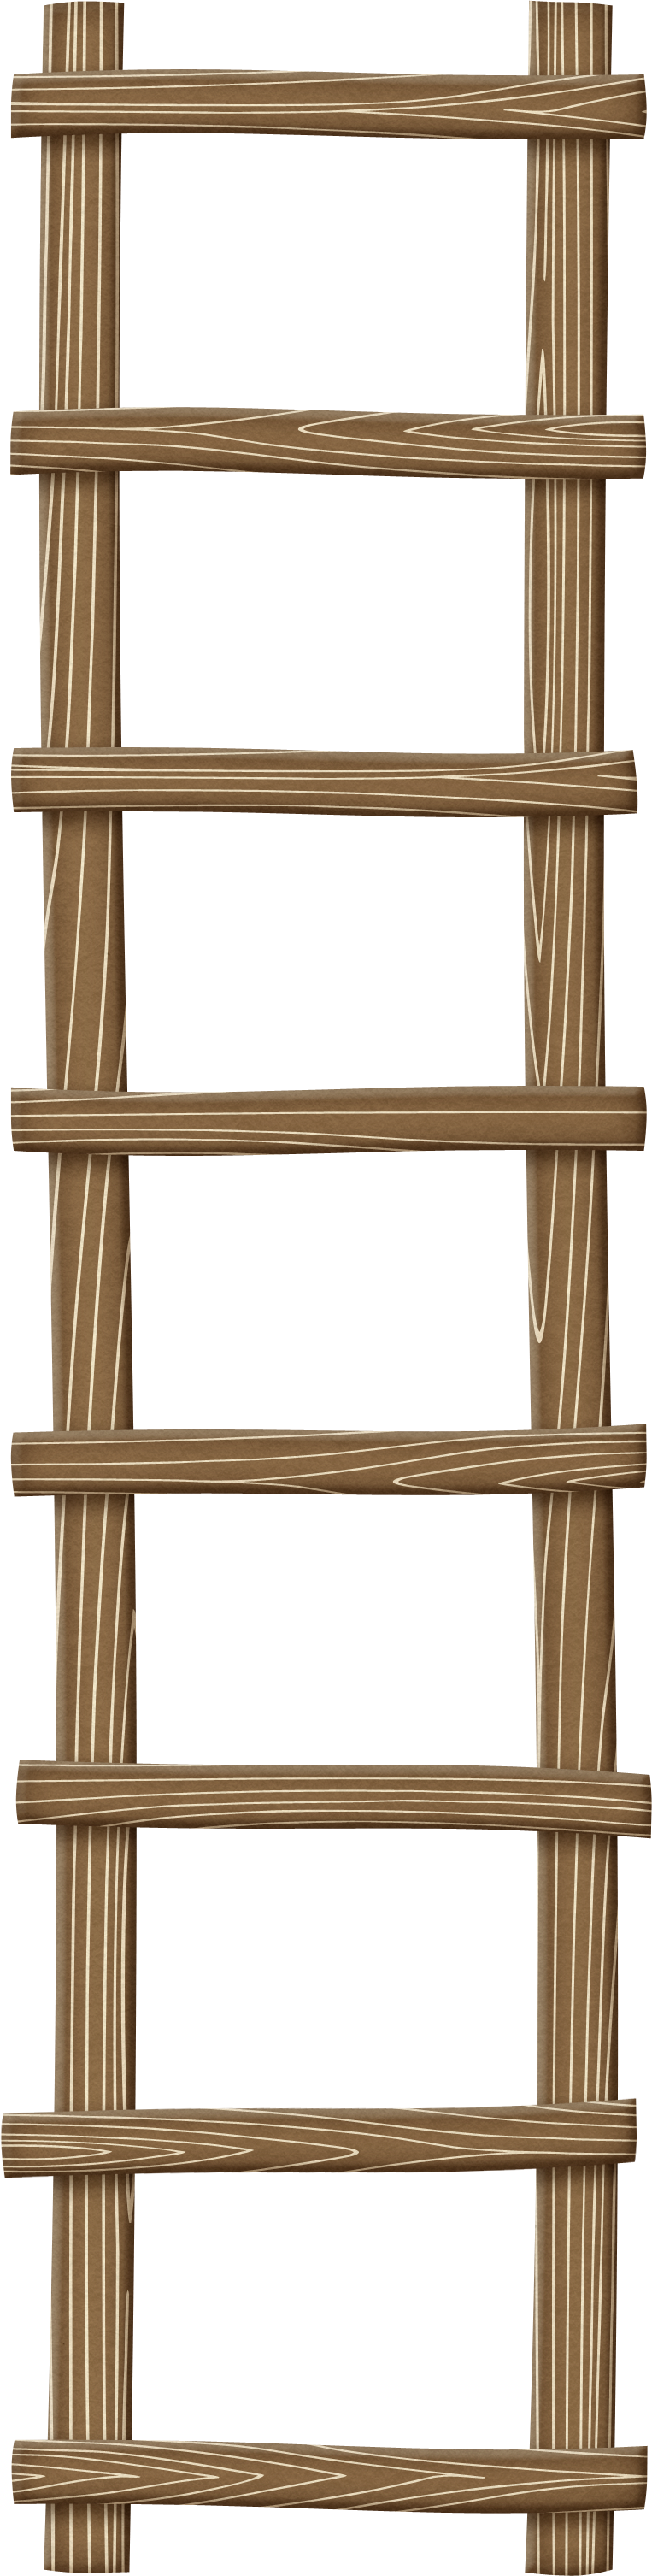 Ladder clipart clear background.  collection of transparent